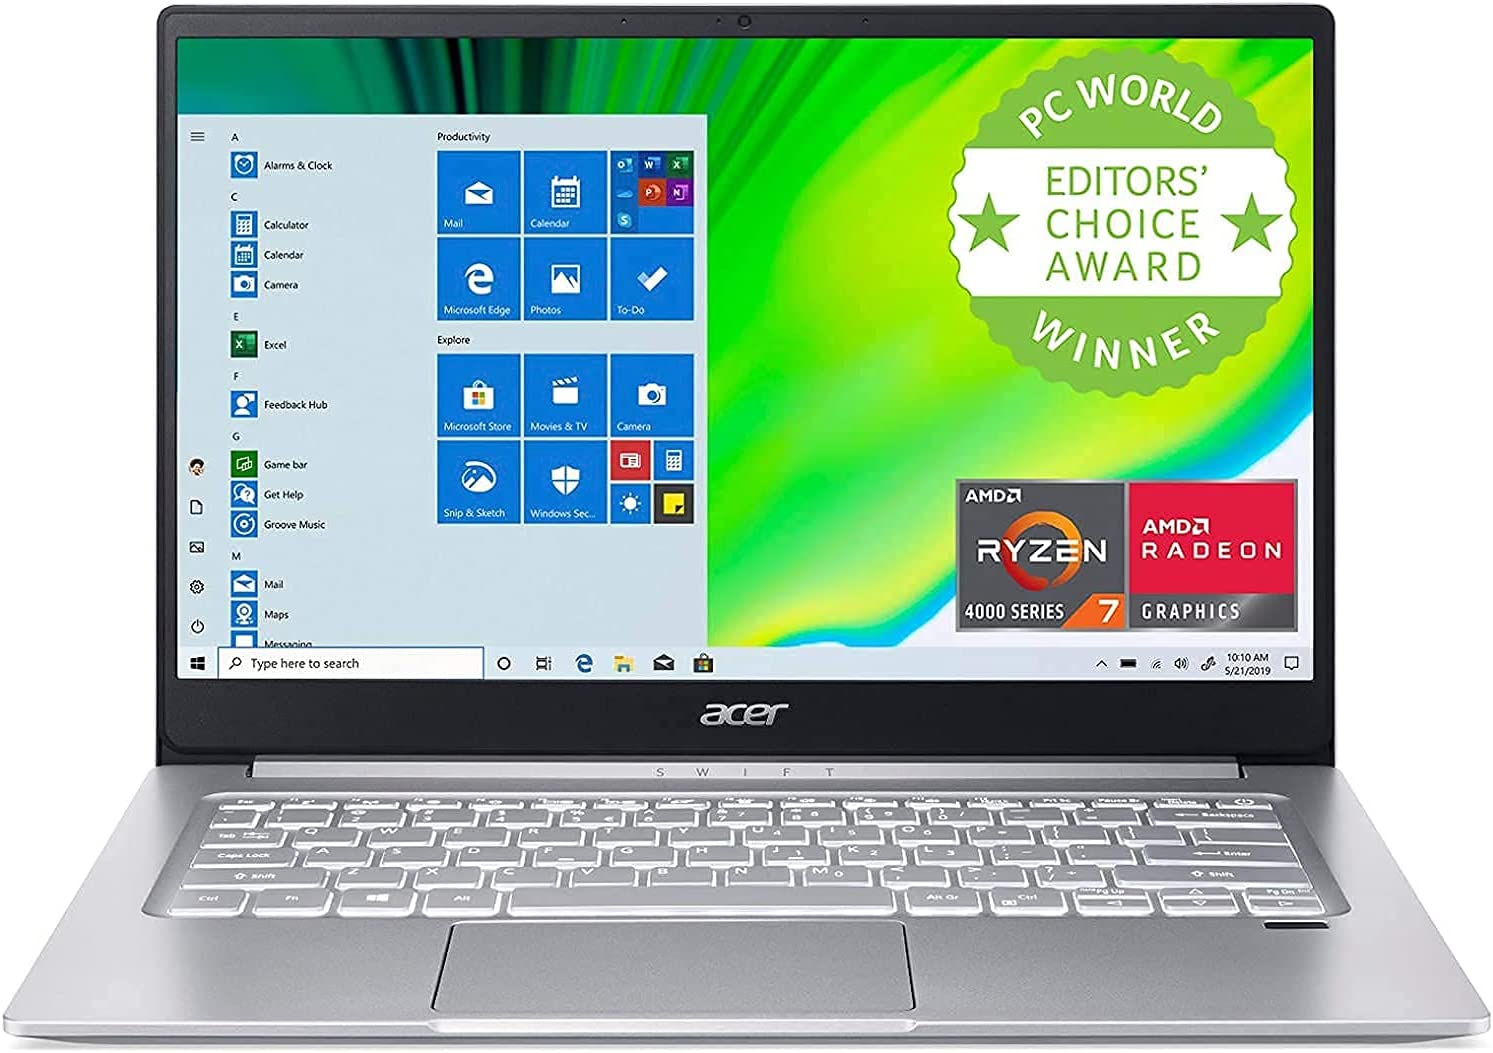 Best Laptop For College Students Under $600